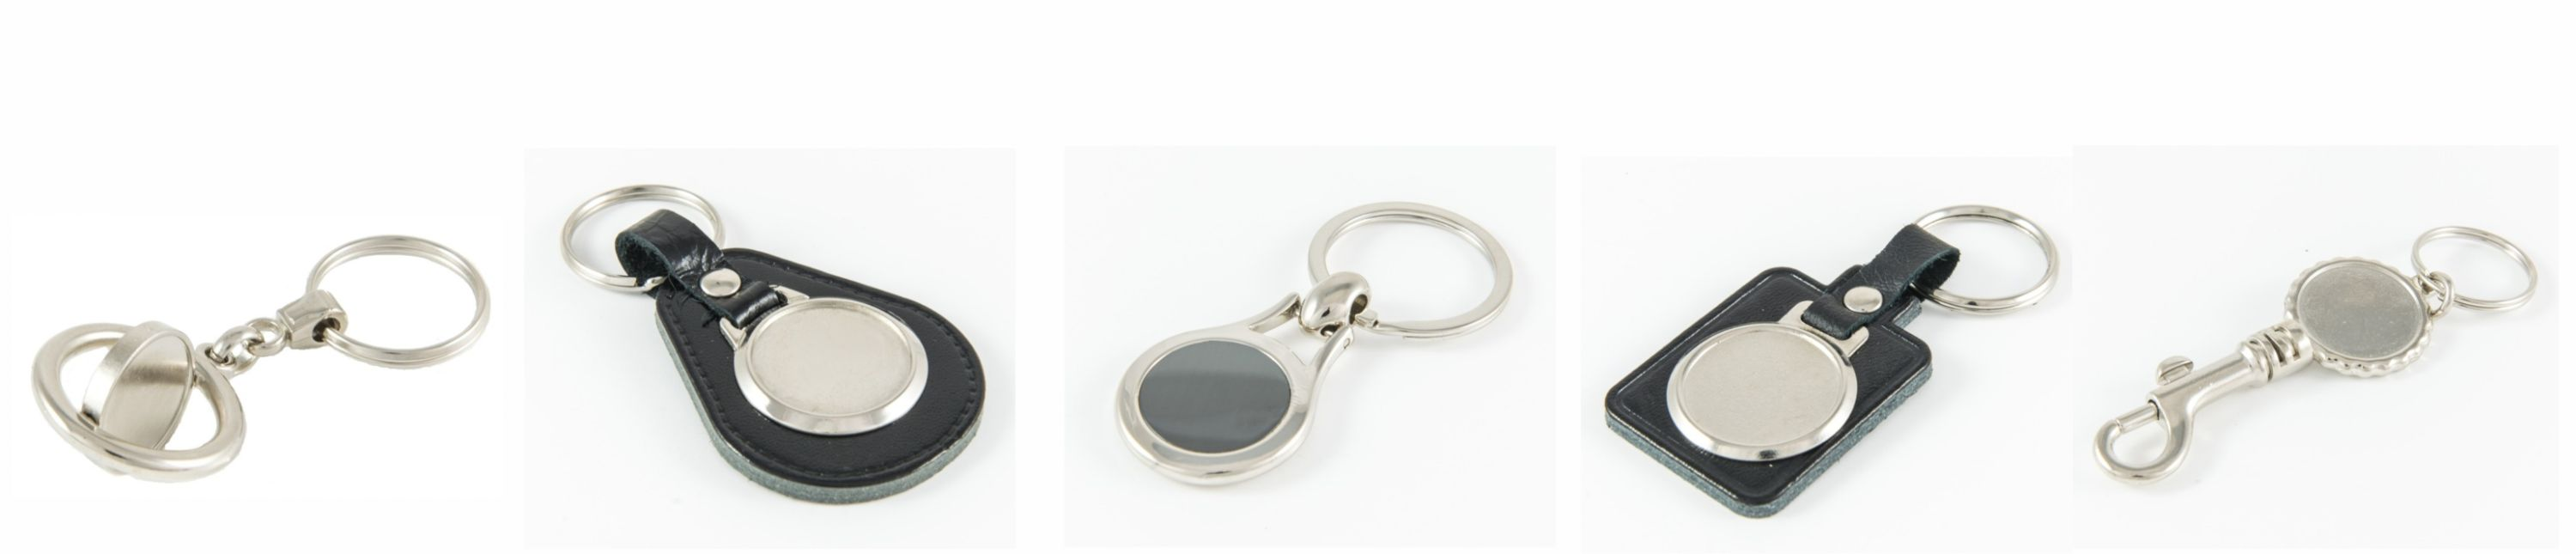 Keyrings and Keyfobs with Clear Domes.